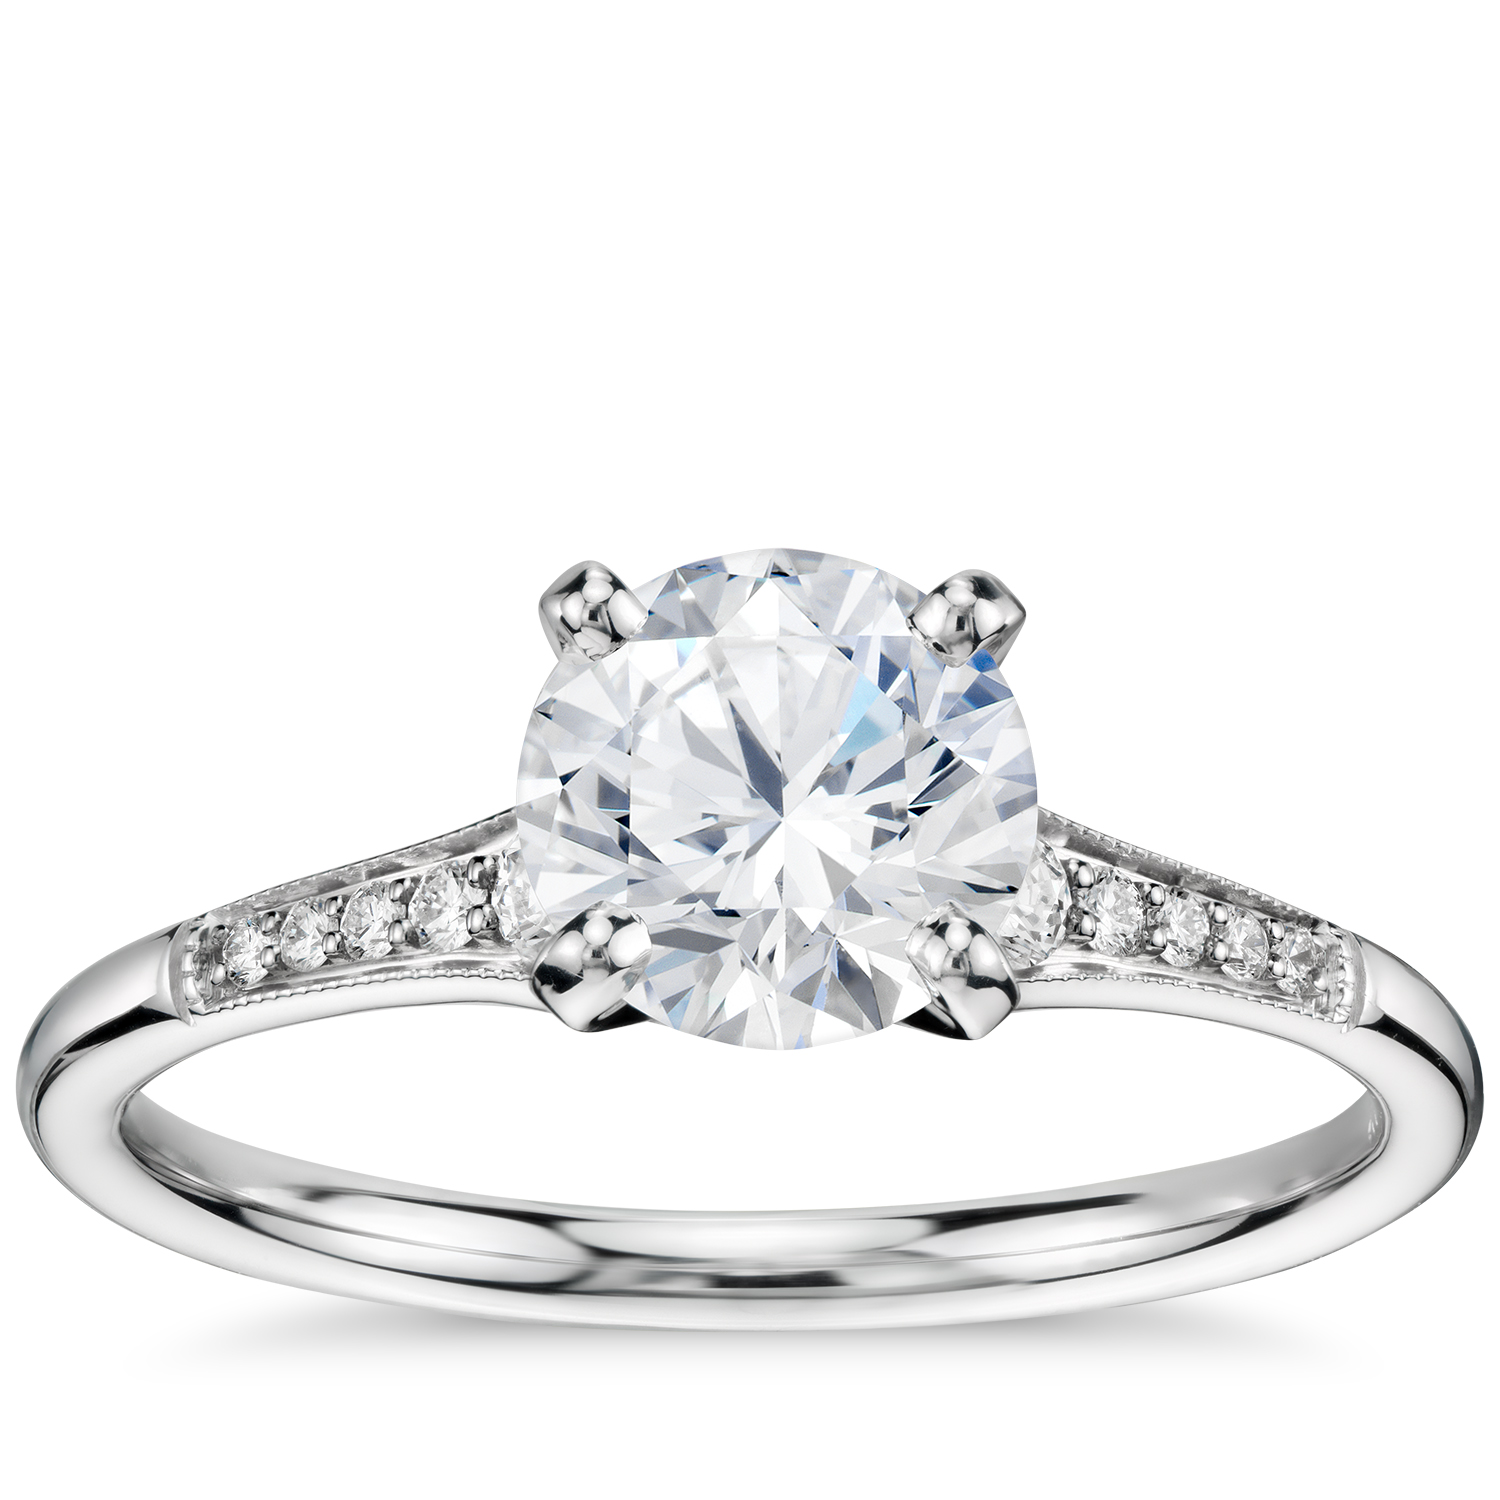 10 Engagement Rings That Will Make You Say Yes! - Rustic ...